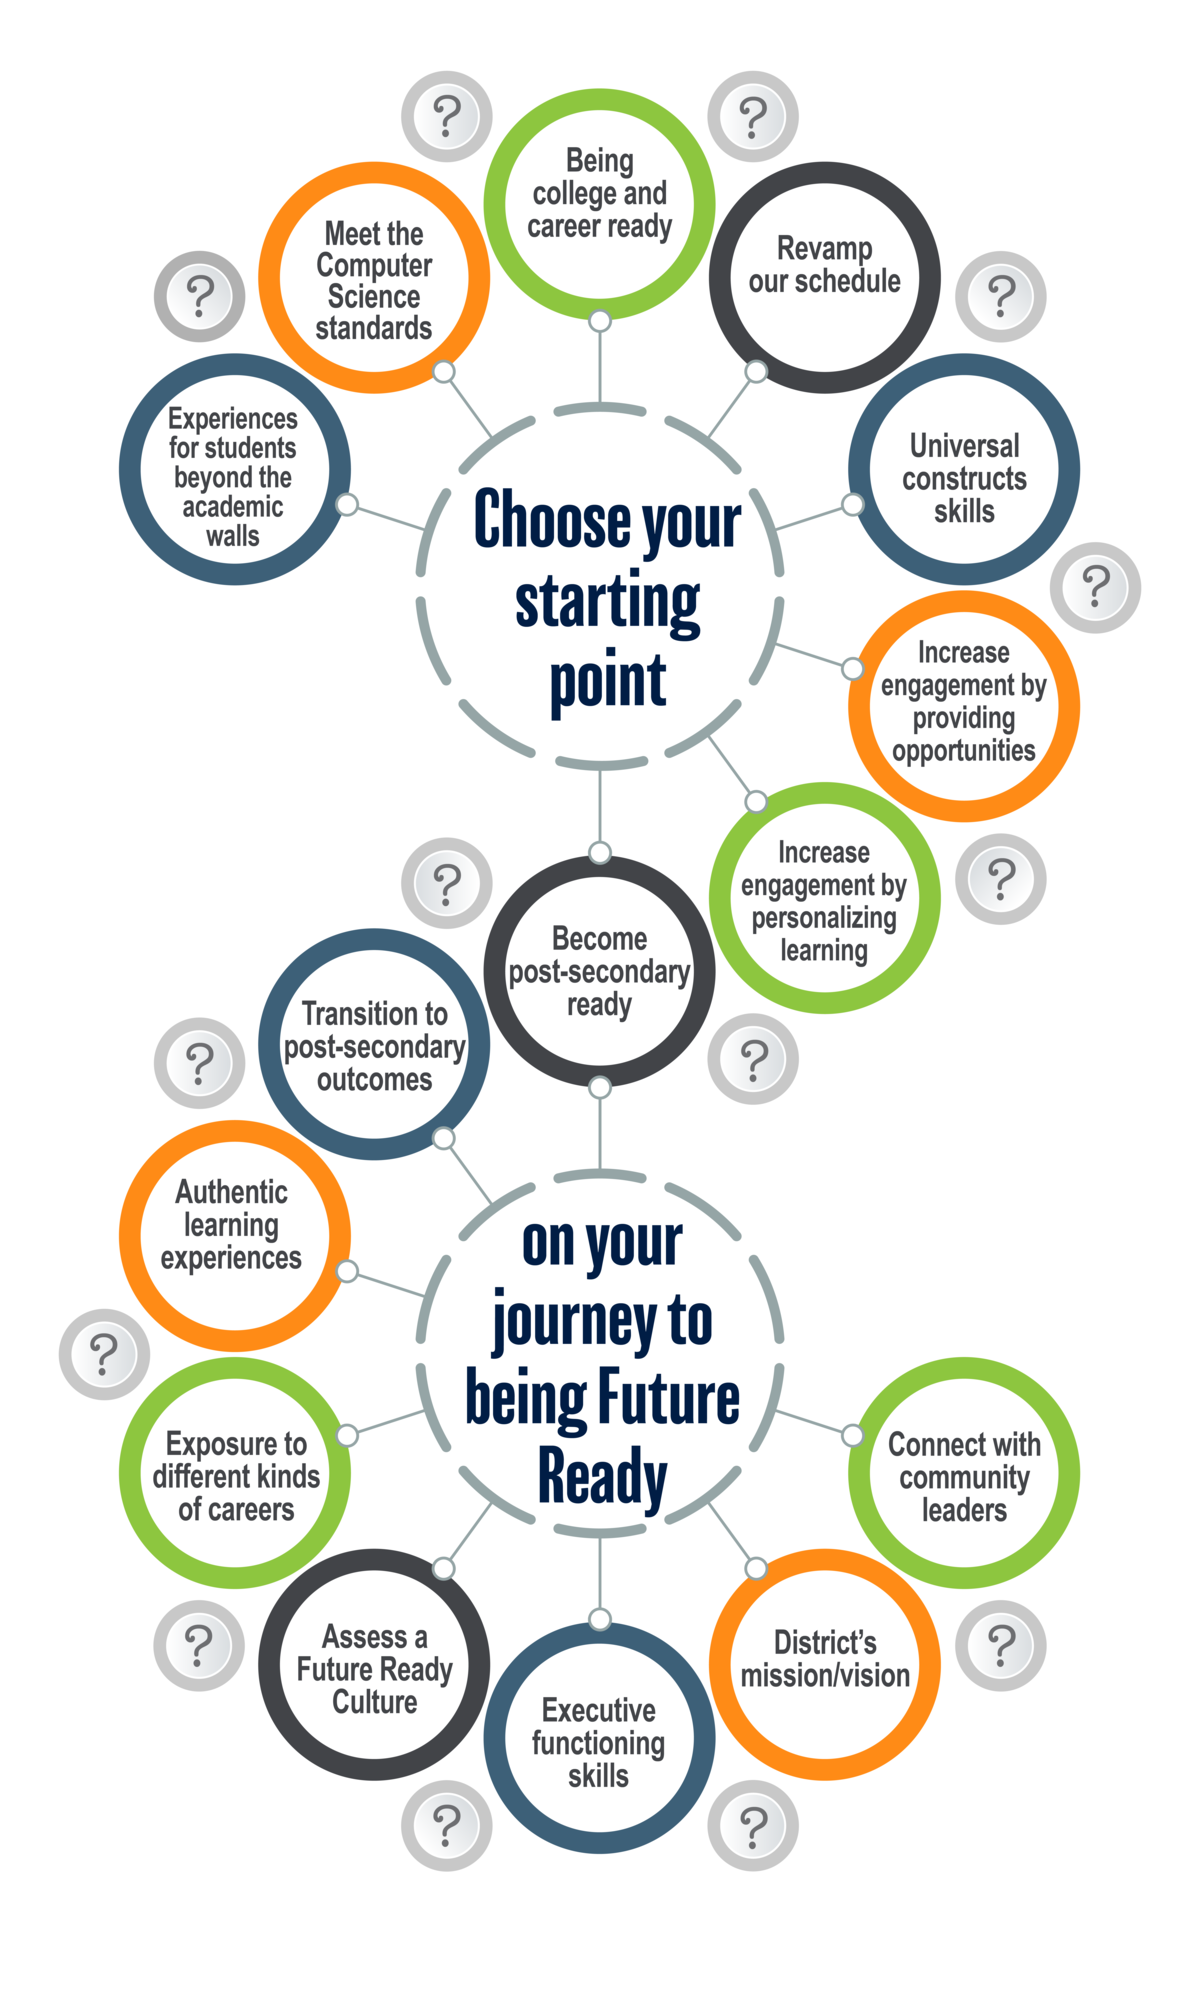 Choose your Starting Point on your journey to being Future Ready - Top 10+ Starting Points for Future Ready